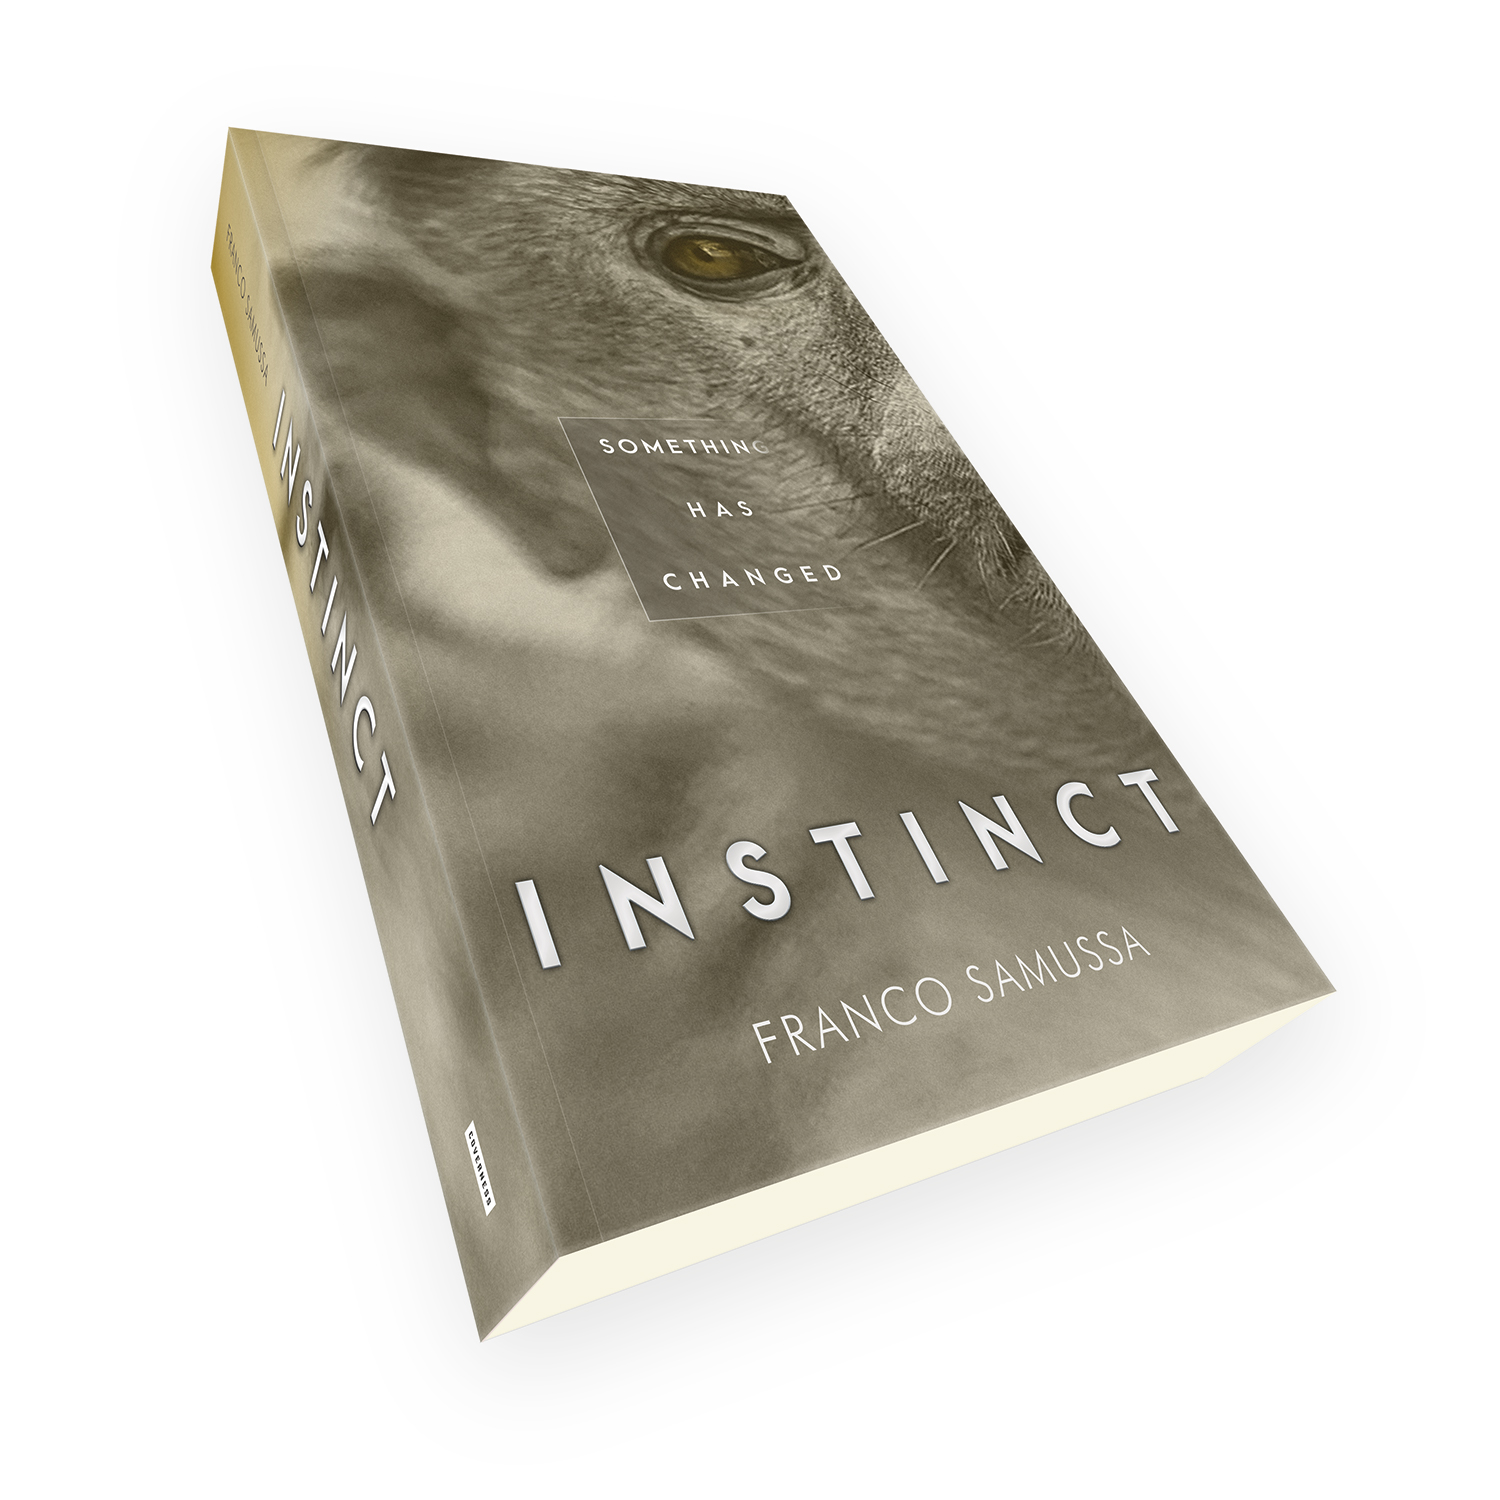 'Instinct' is a bespoke cover design for a modern eco-thriller novel. The book cover was designed by Mark Thomas, of coverness.com. To find out more about my book design services, please visit www.coverness.com.